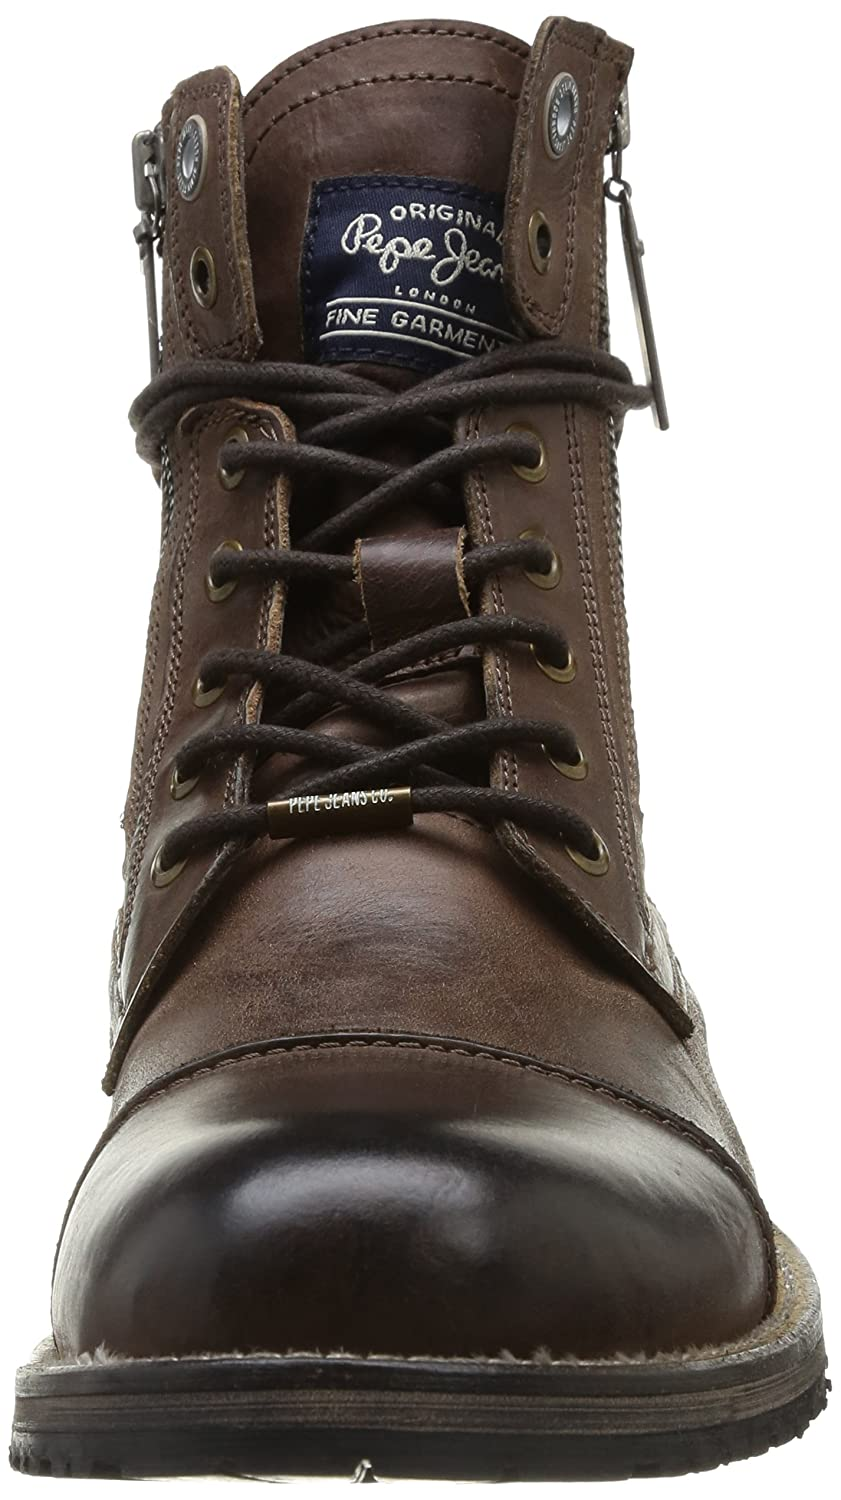 Mens Melting Flex Classic Boots, 878-Brown Pepe Jeans London